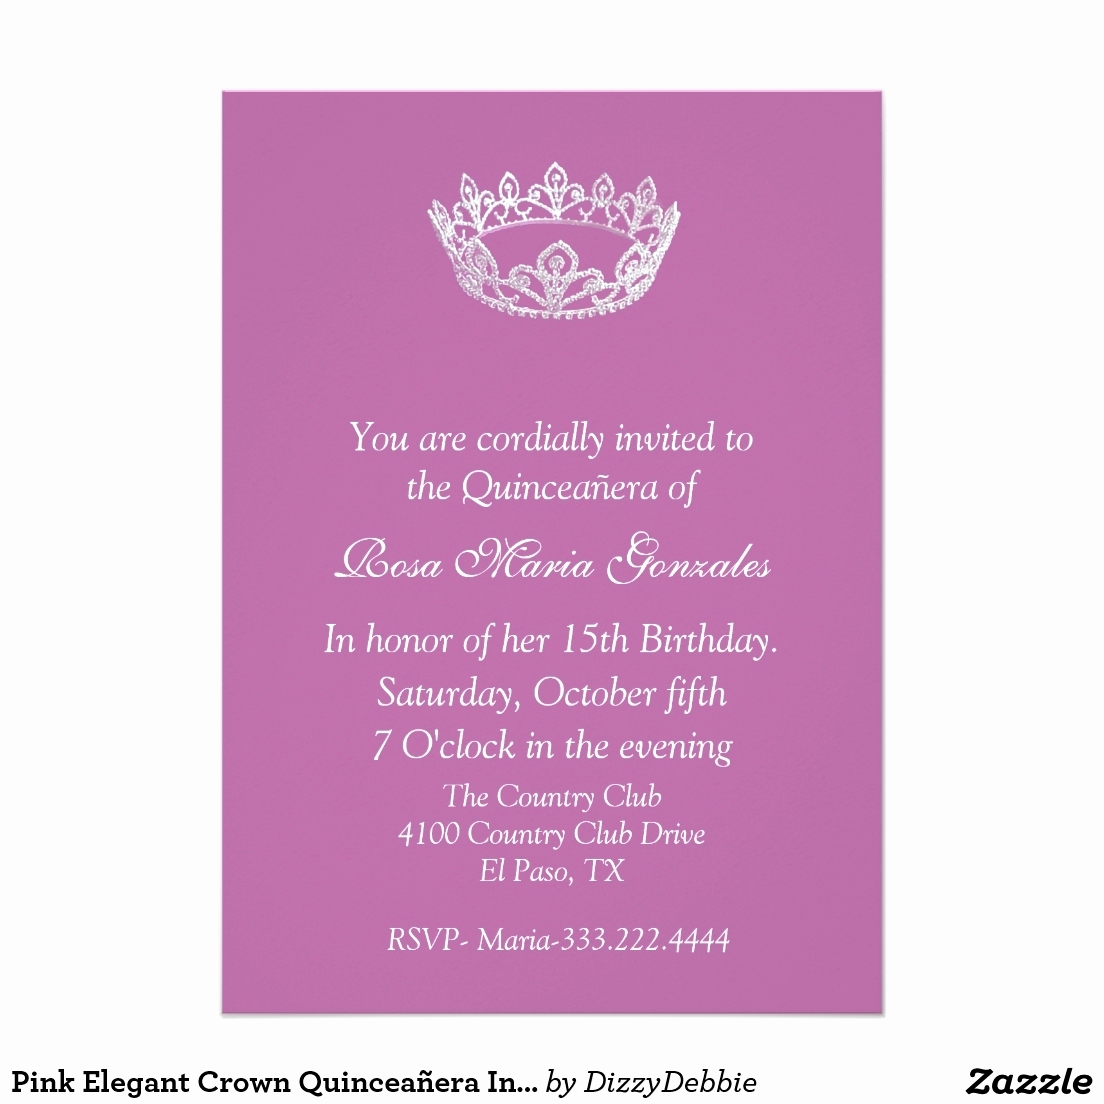 Quinceanera Invitation Wording In Spanish Lovely Quotes for Quinceanera Invitations In Spanish Cobypic